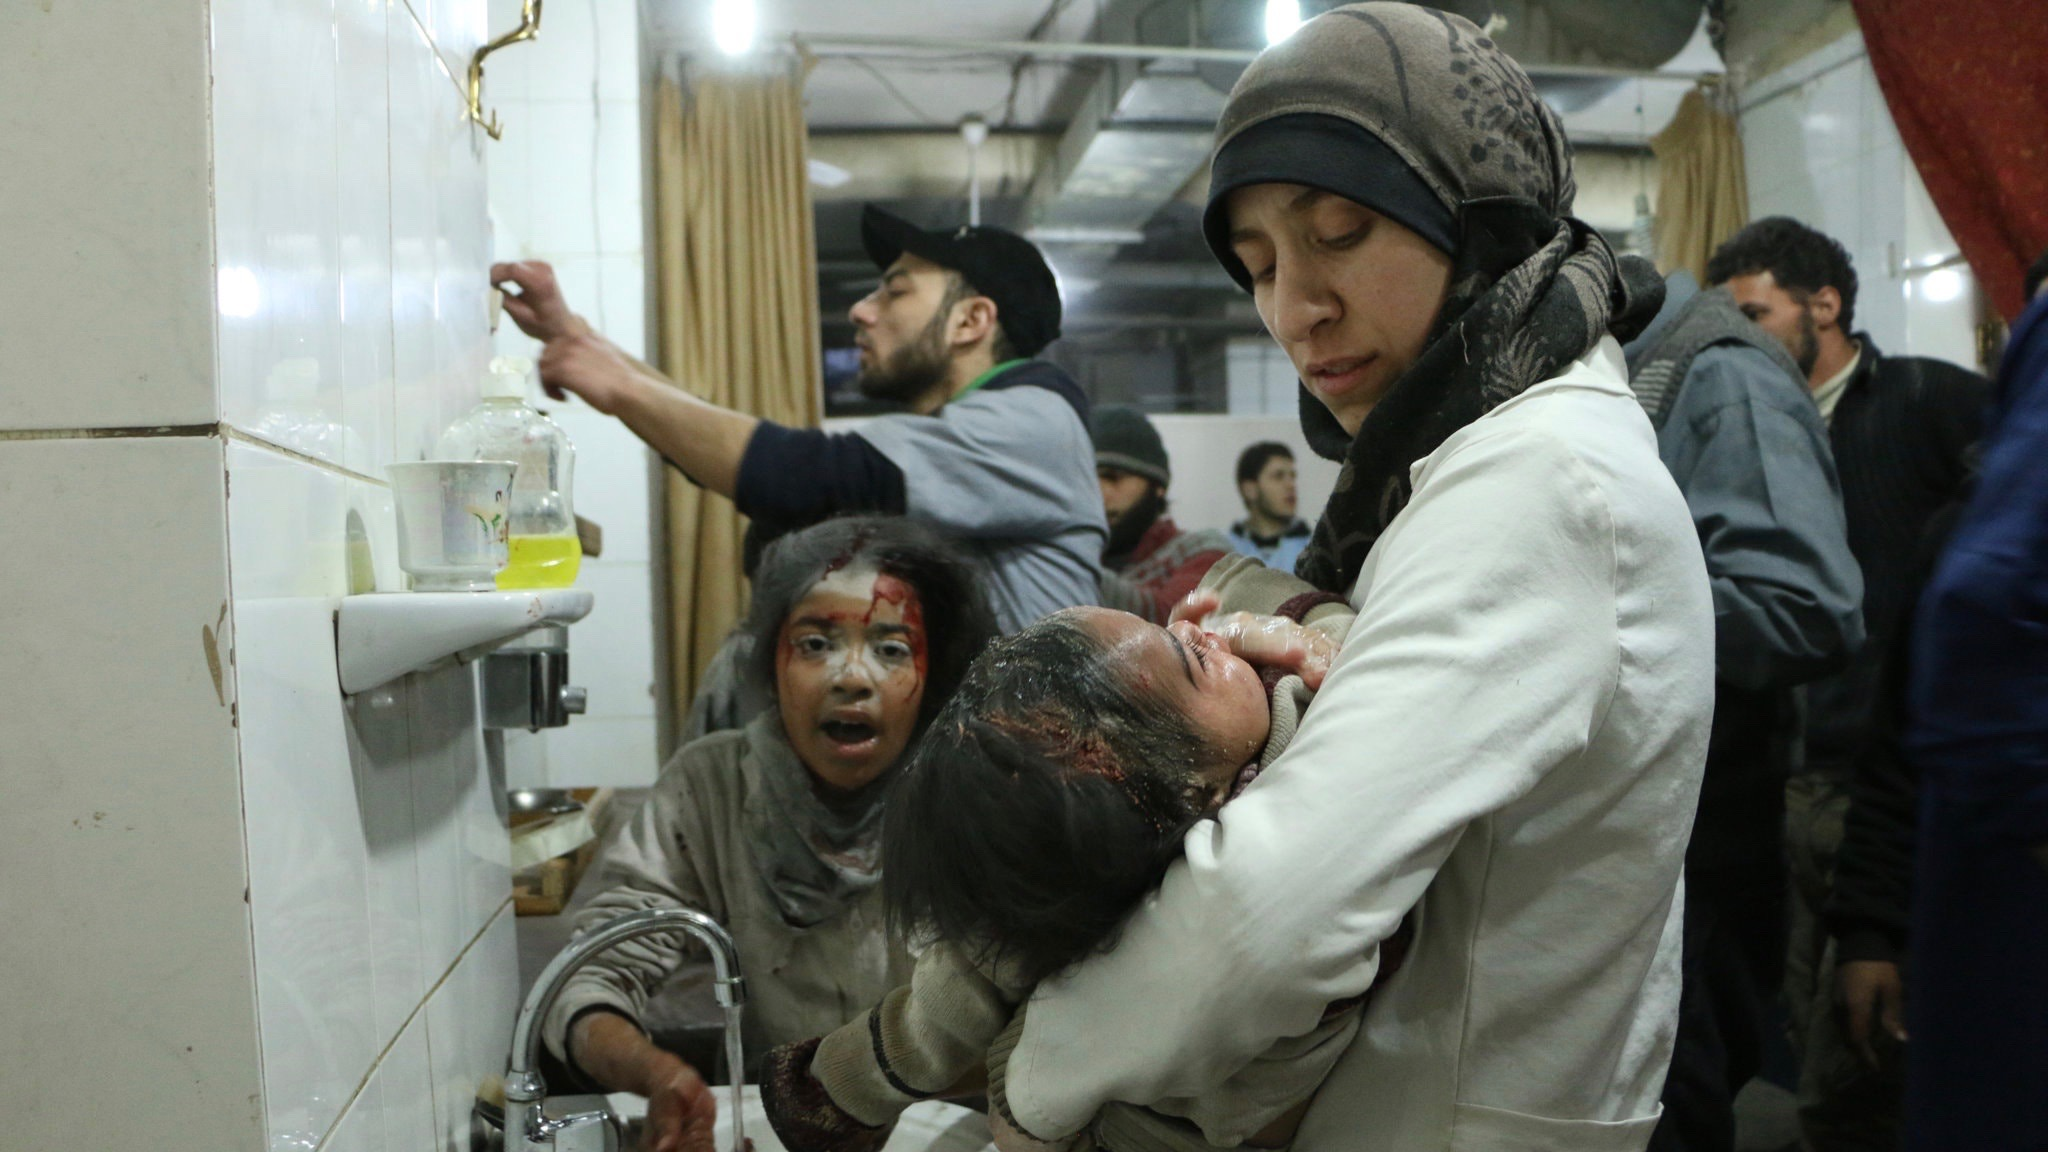 """Dr. Amani Ballour treats an injured baby in Feras Fayyad's documentary """"The Cave."""""""